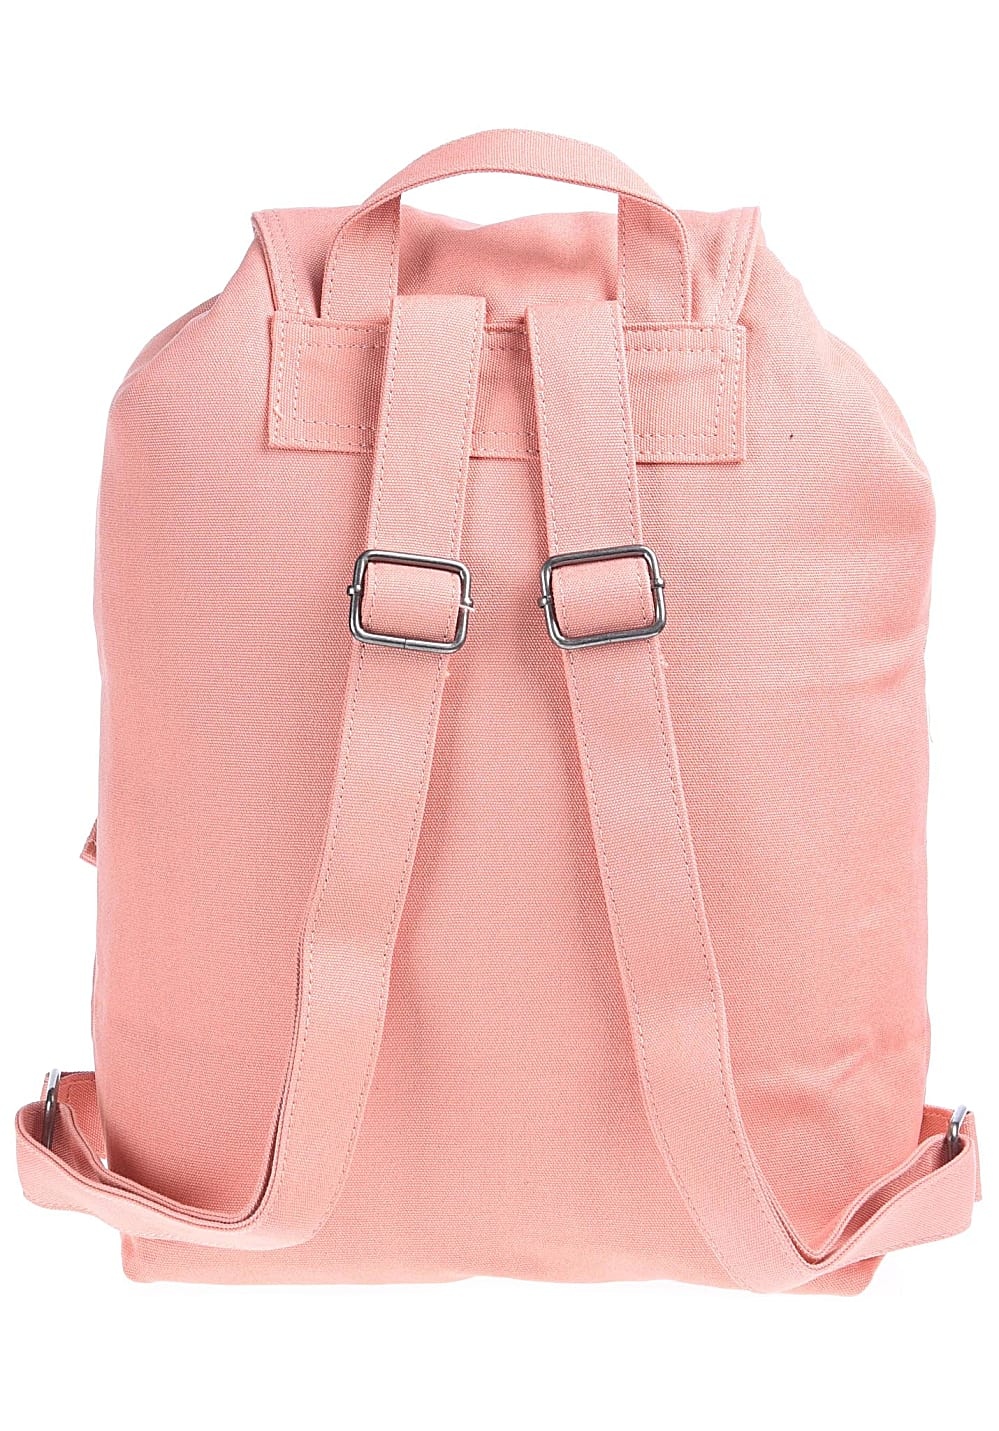 93c94389d7 Vans Lakeside - Backpack for Women - Pink - Planet Sports